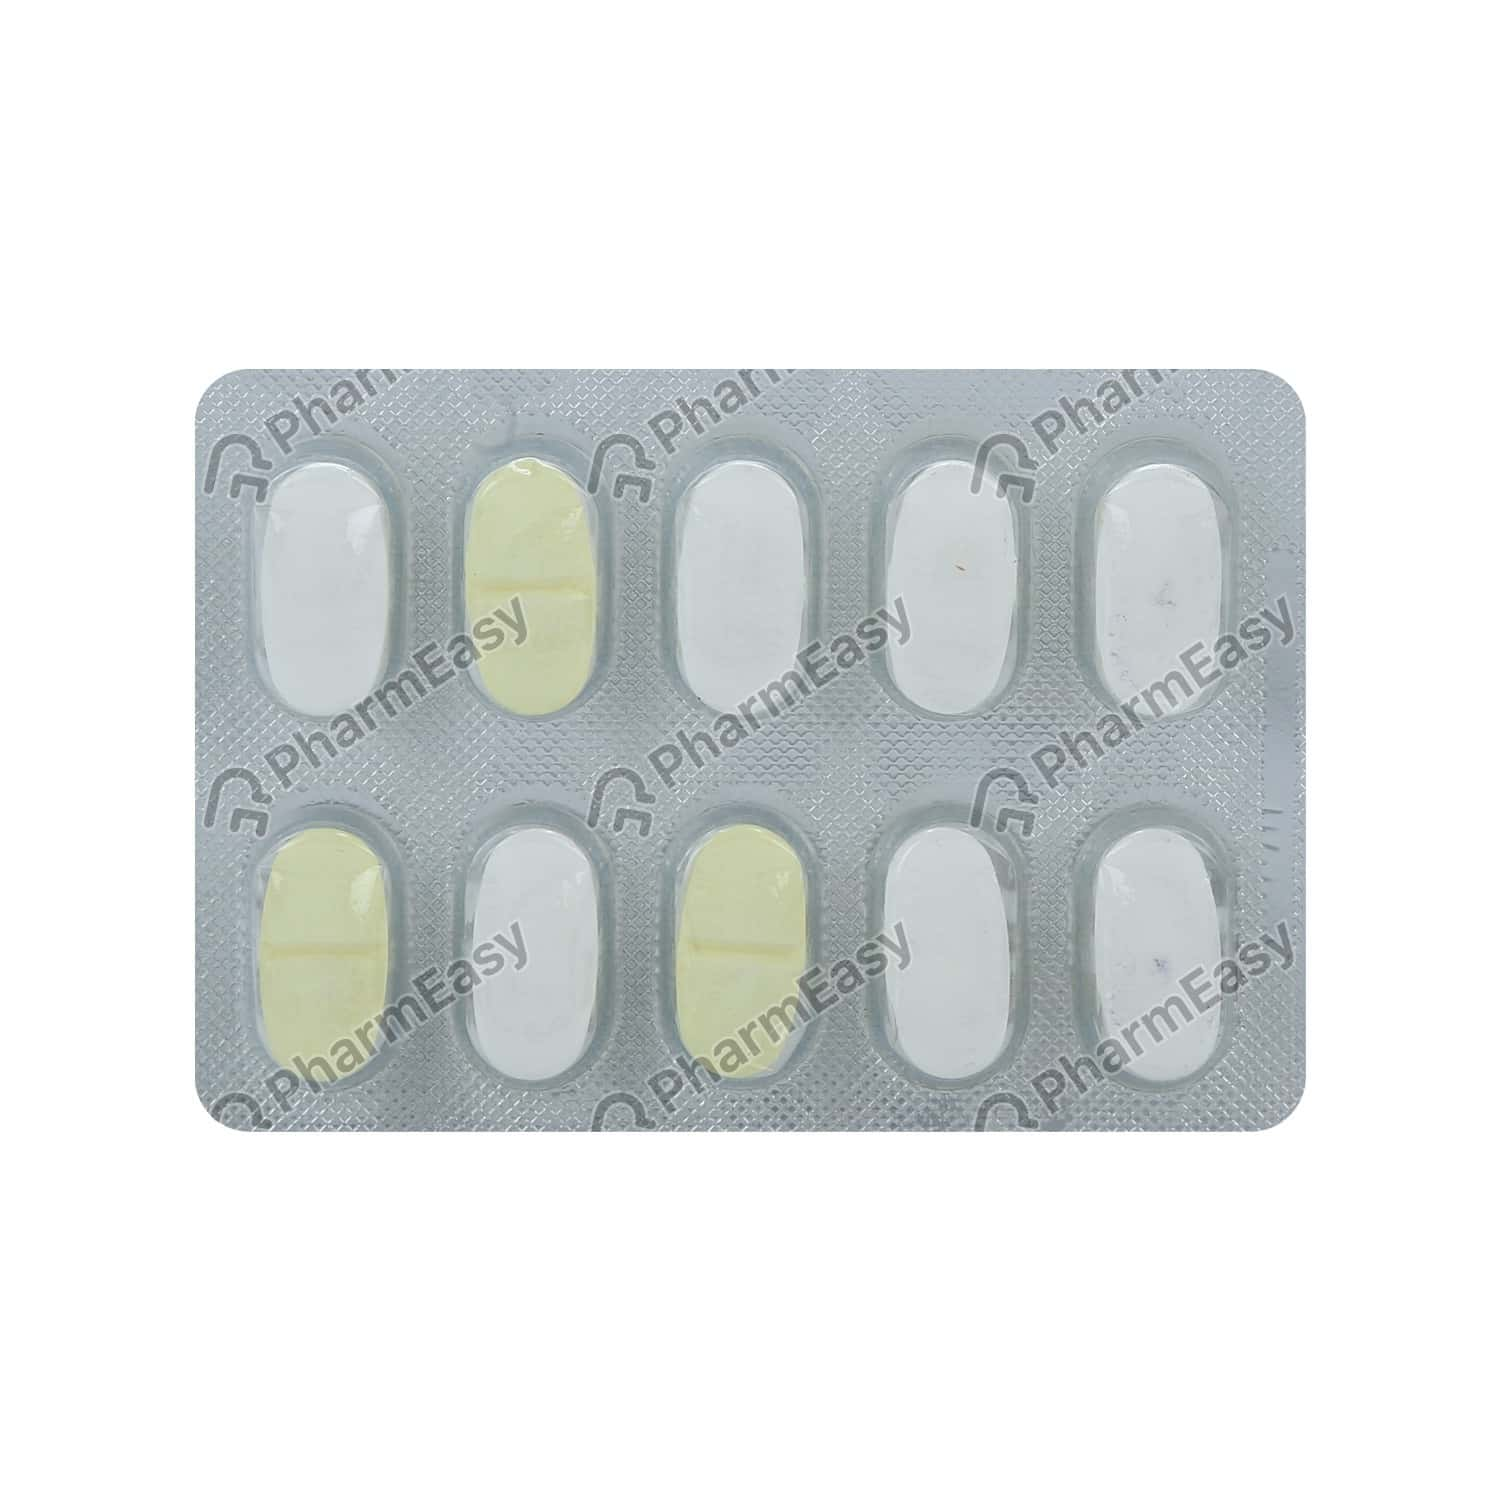 Exermet Gm Forte 1mg Strip Of 10 Tablets